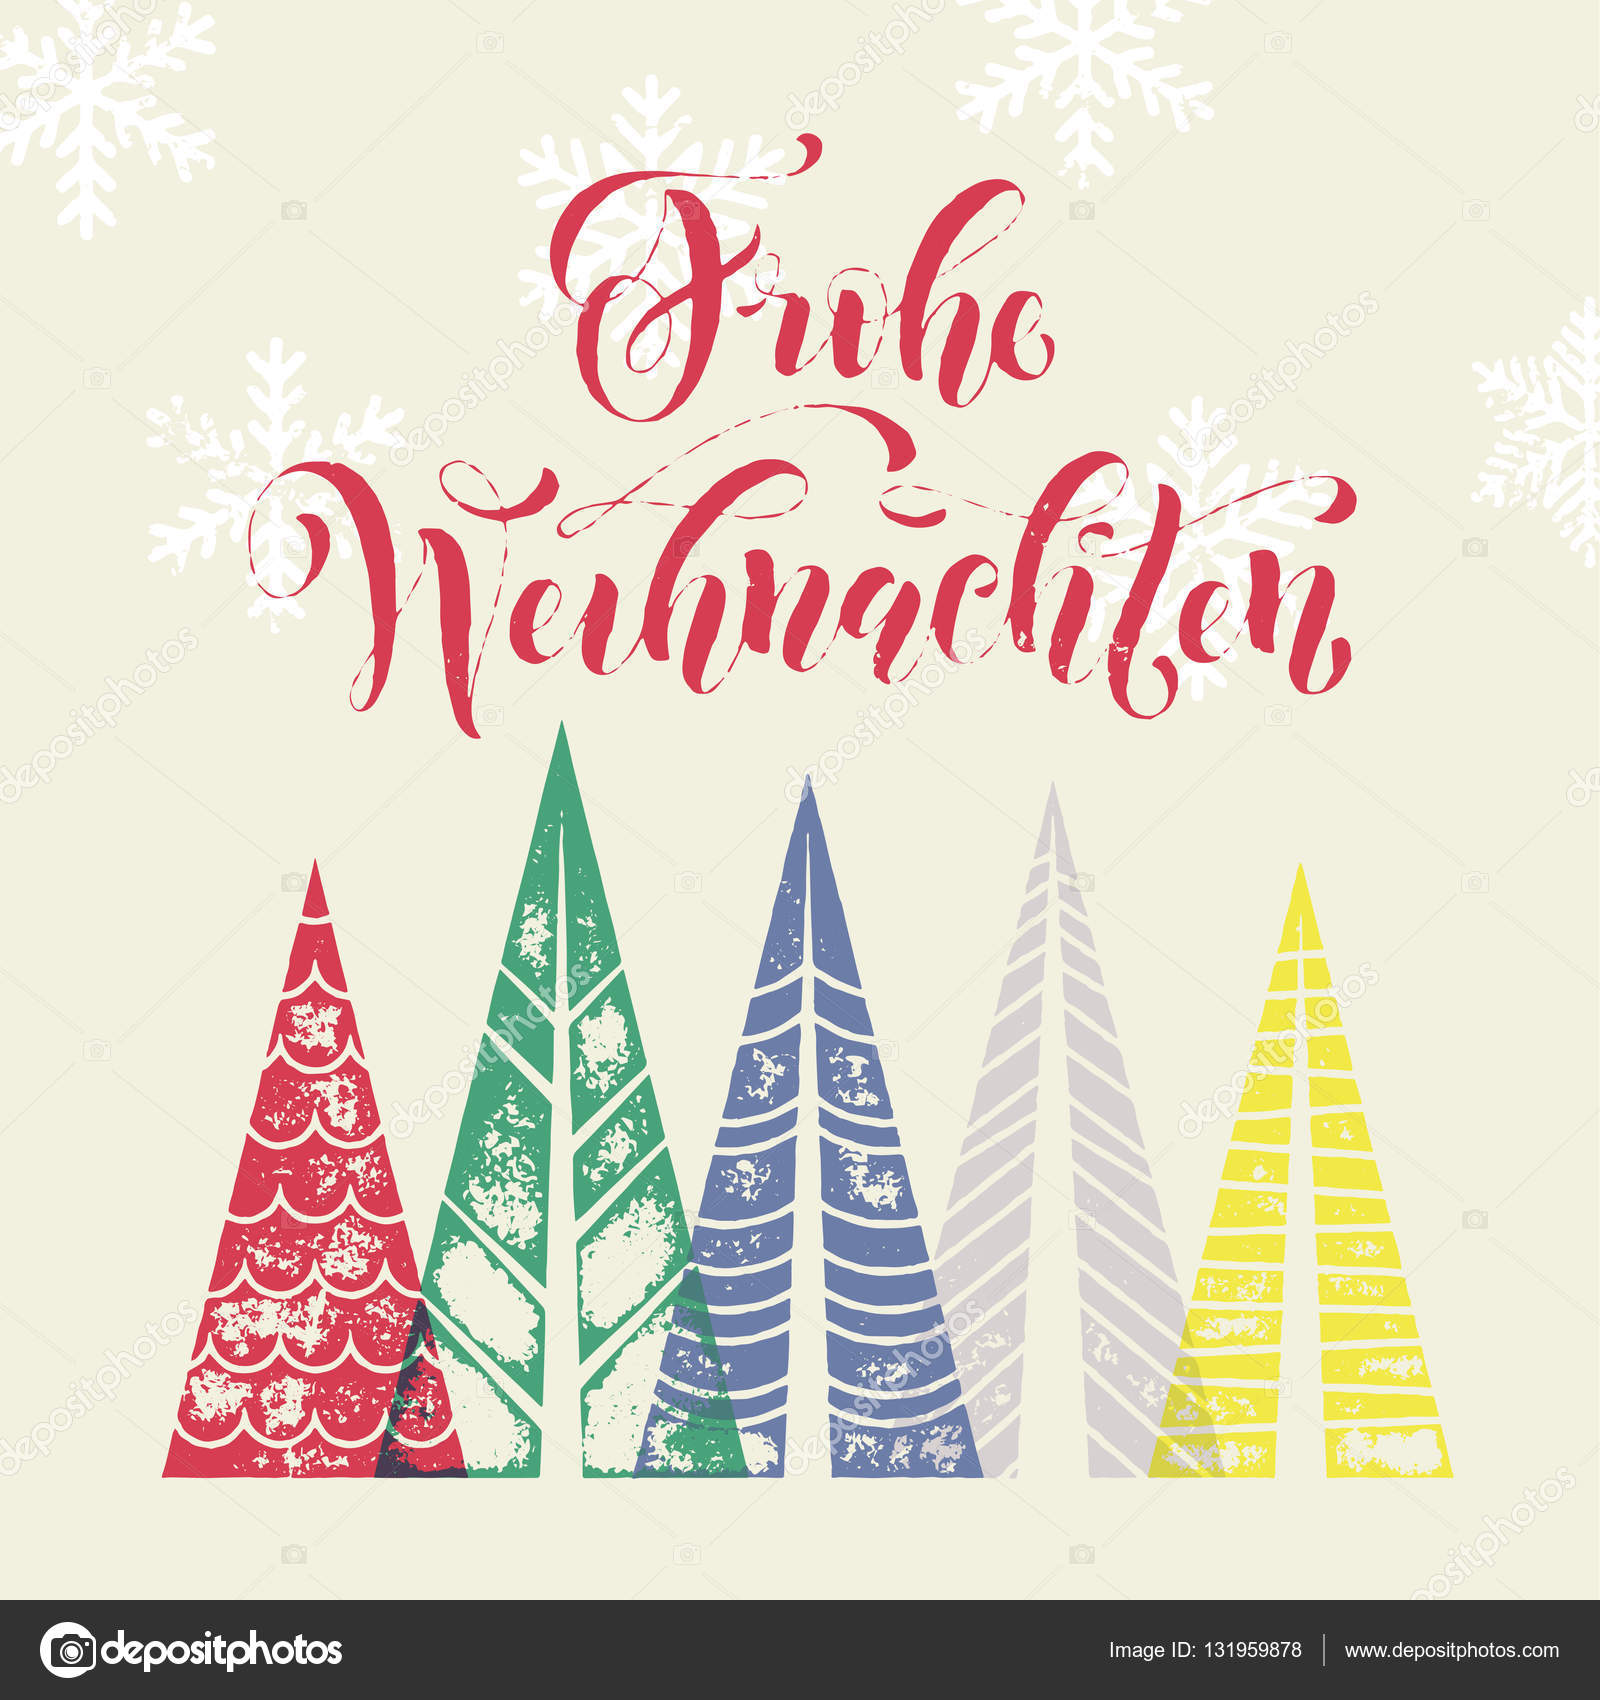 German christmas holiday frohe weihnachten greeting card stock german christmas holiday frohe weihnachten greeting card colorful winter holiday in germany greeting card merry christmas weihnachten text christmas tree m4hsunfo